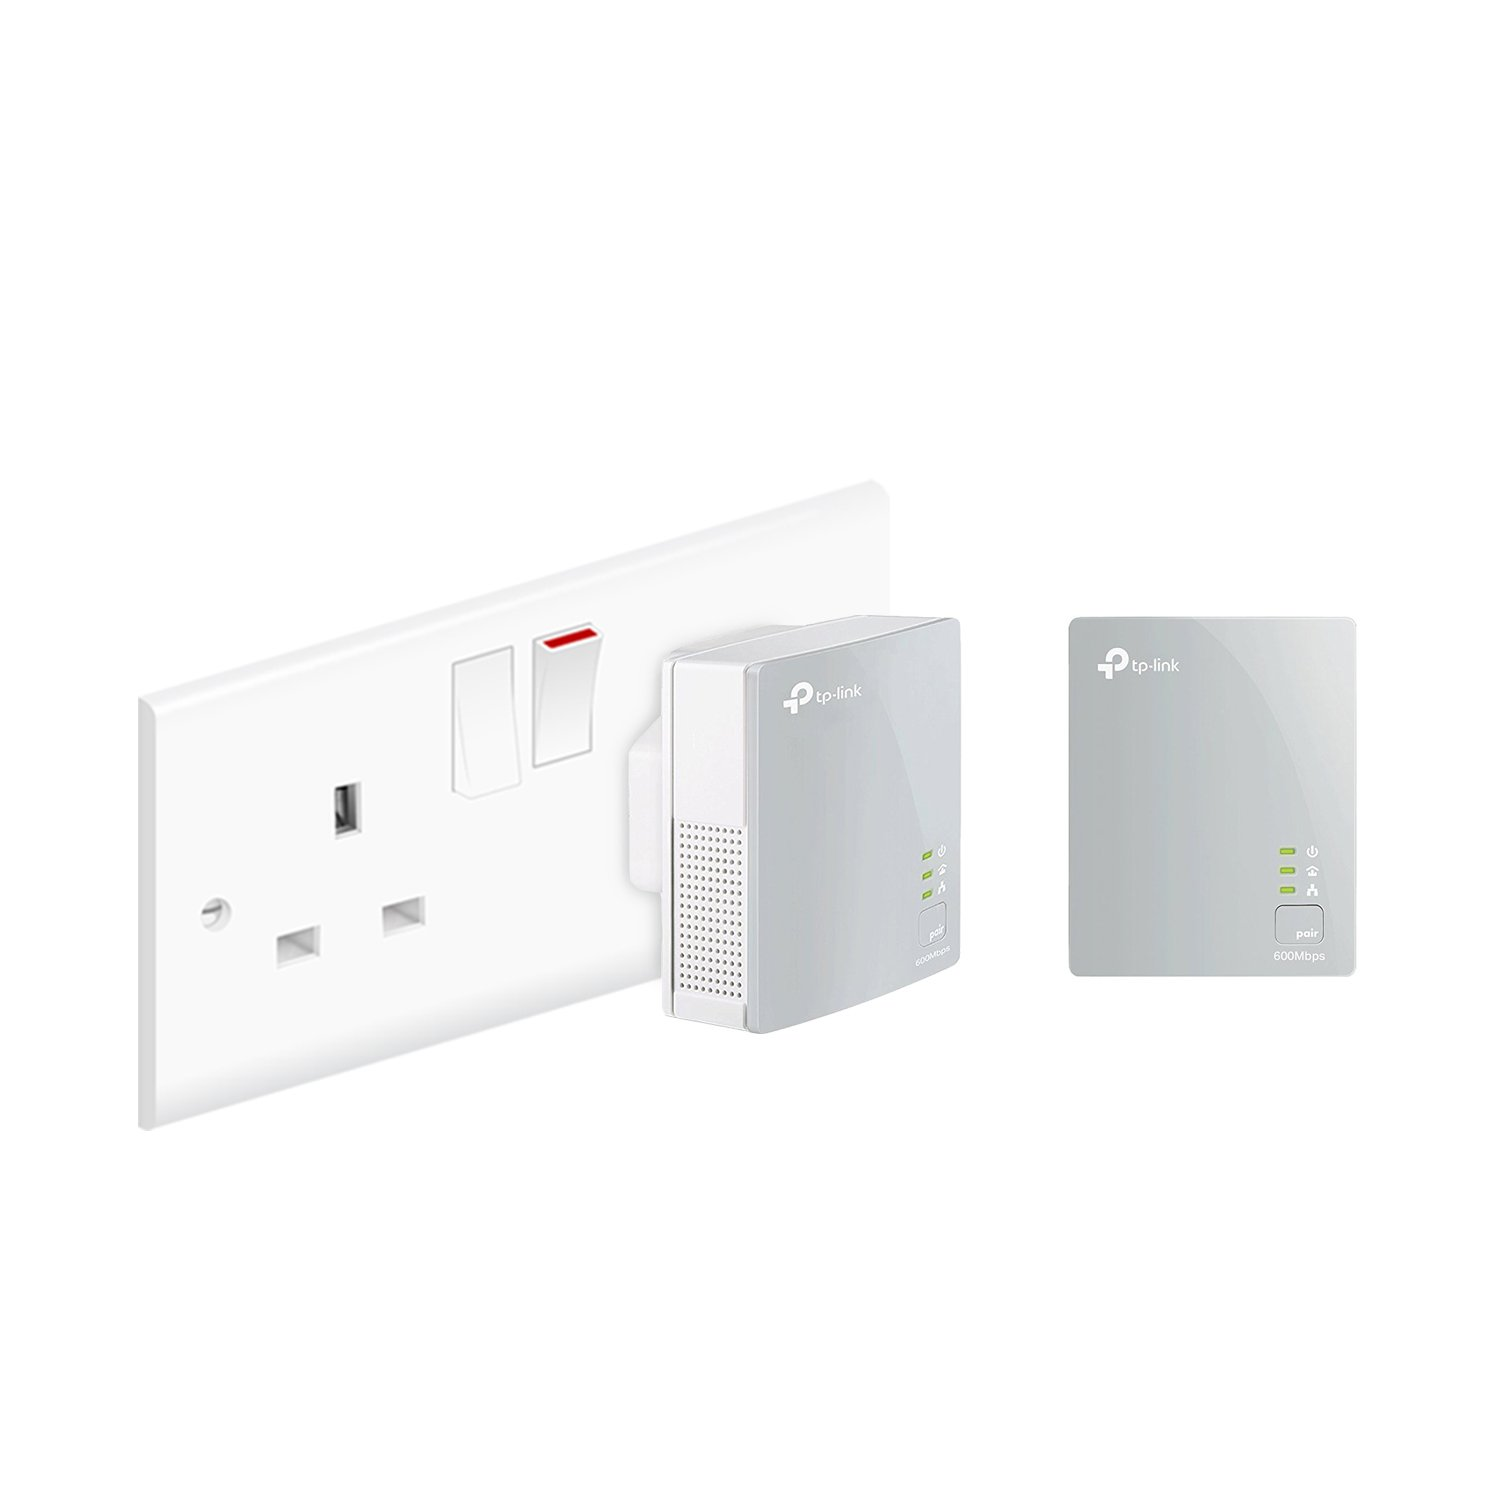 TP-Link TL-PA4010KIT Nano Powerline Adapter Starter Kit, No Configuration  Required, UK Plug